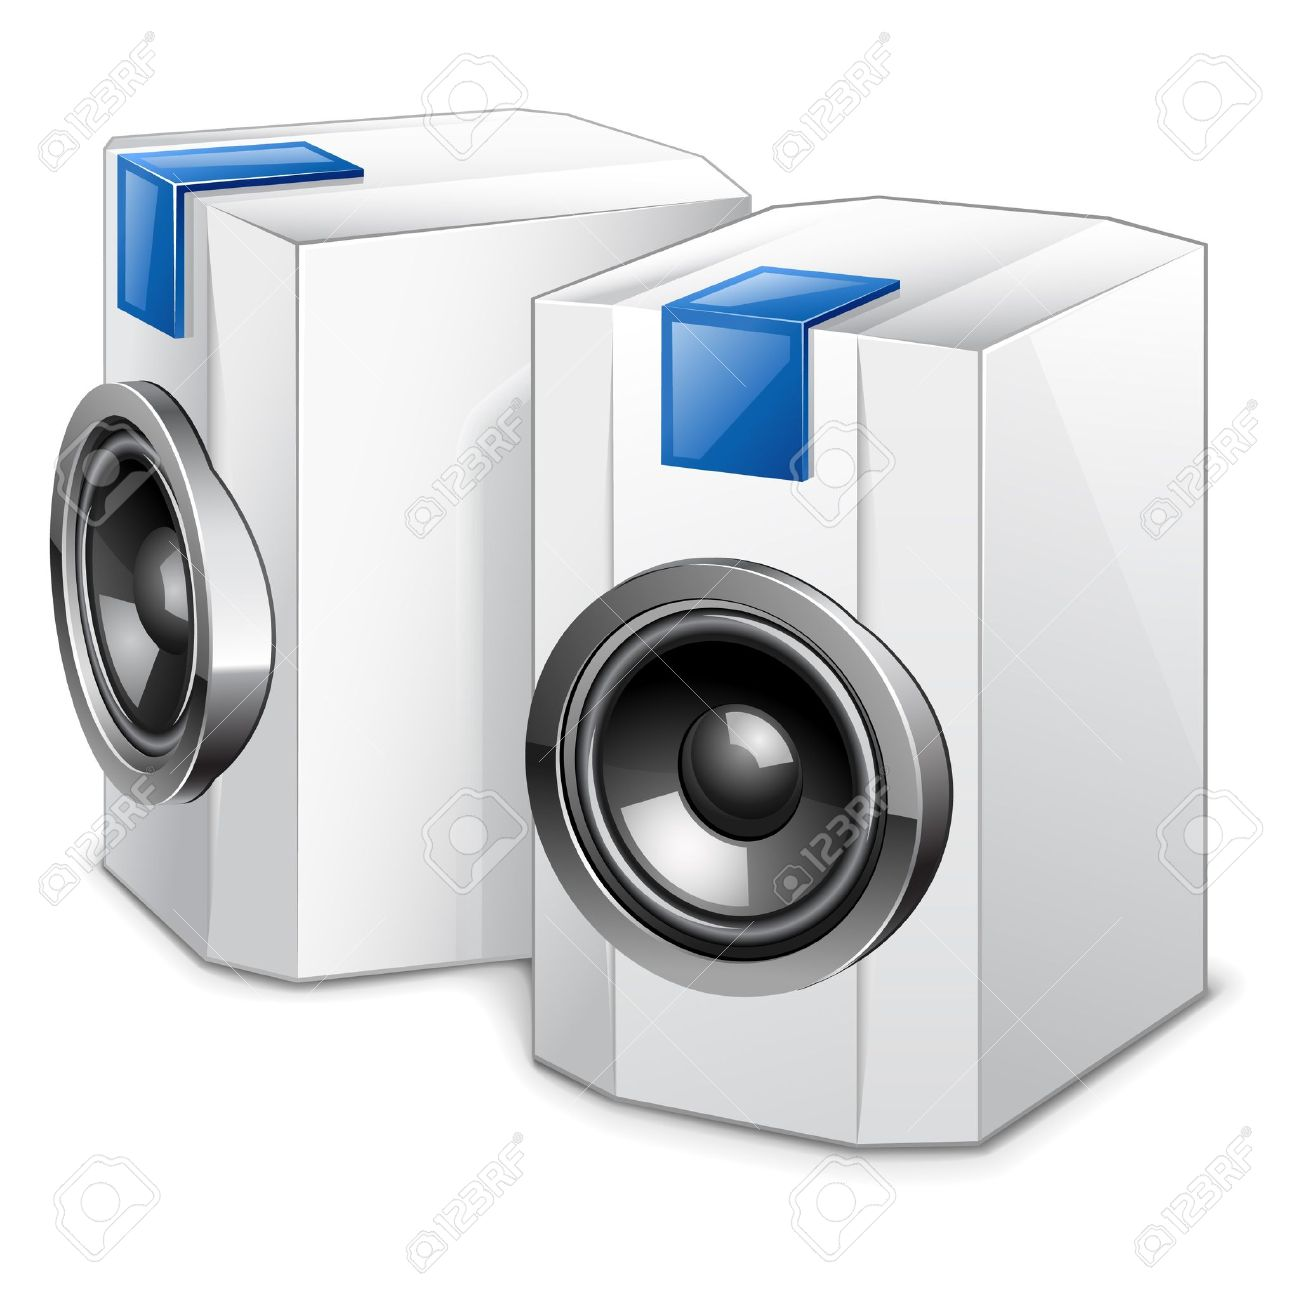 audio speakers clipart. vector illustration of audio speakers on white background stock - 11514256 clipart